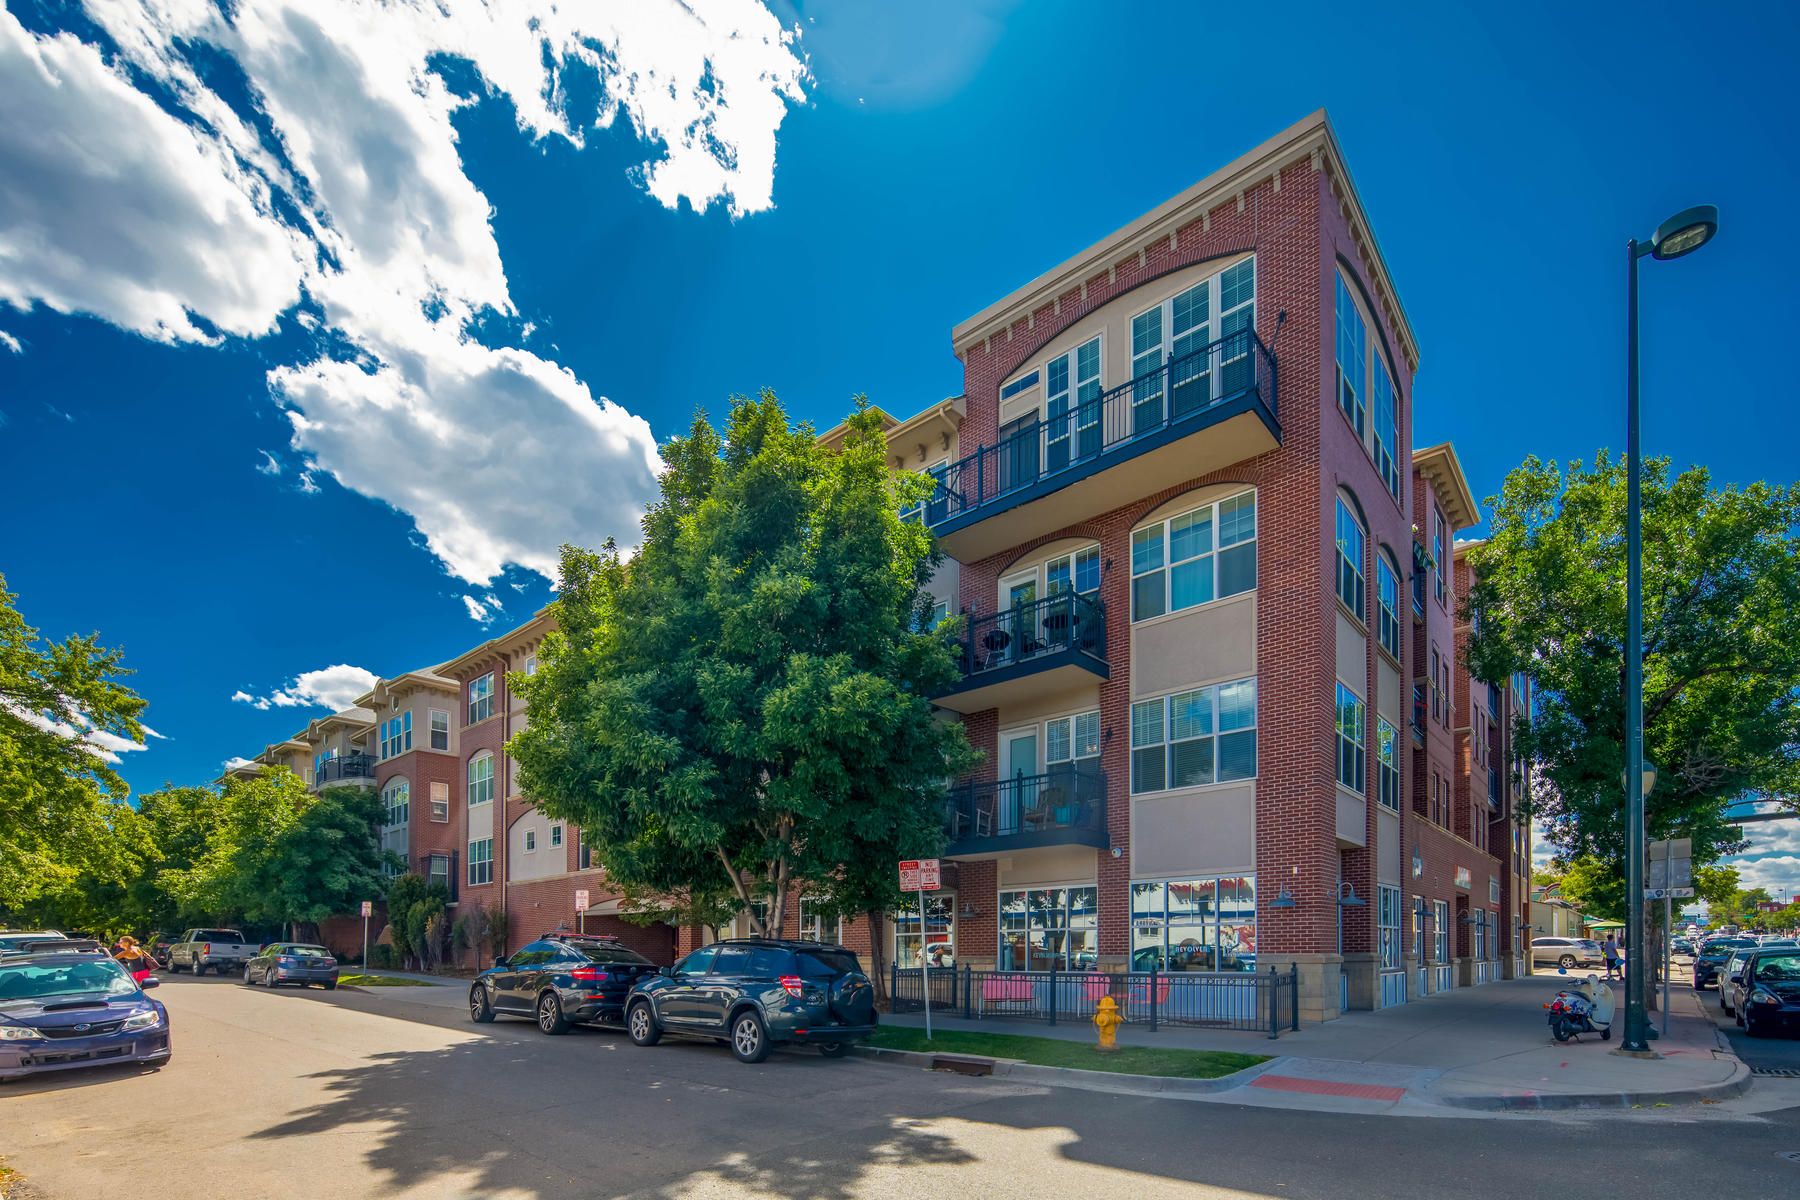 Property for Active at Loft Style Open Condo In High Walk-ability Area! 1489 Steele St #207 Denver, Colorado 80206 United States